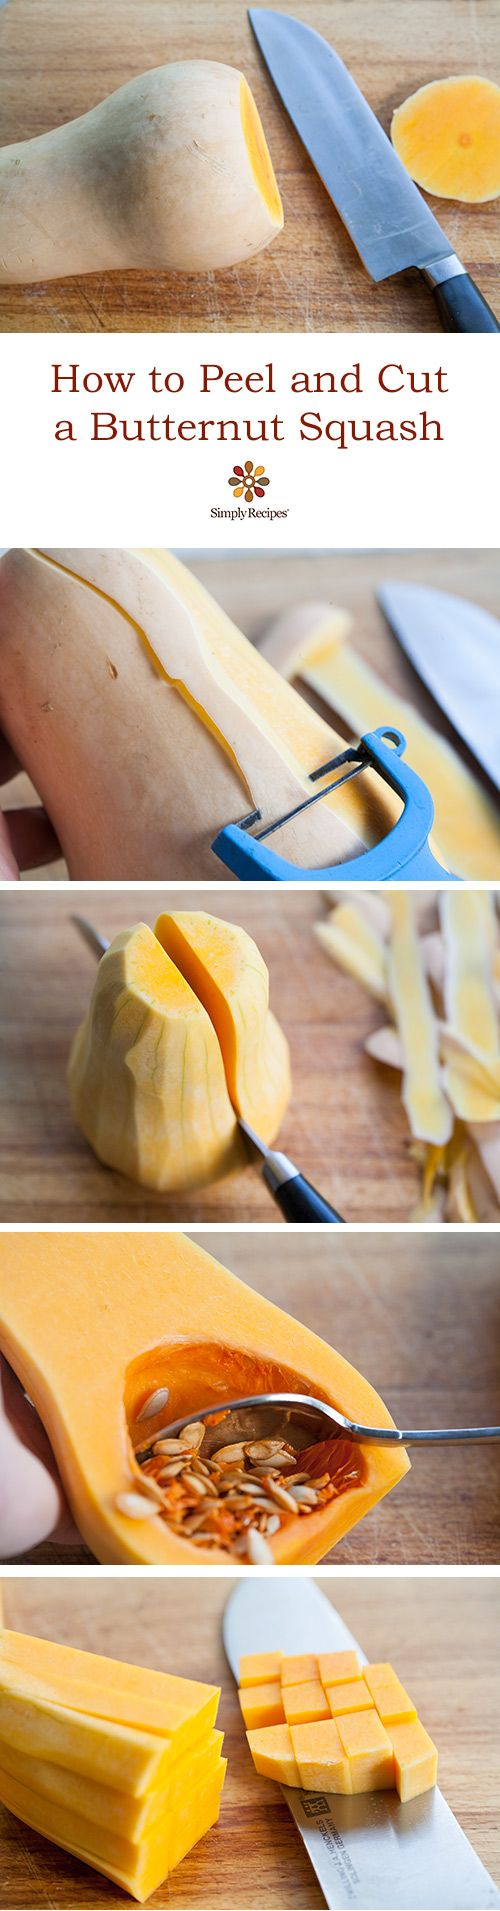 Butternut squash can be so hard to work with! Here's how to safely peel and cut them. On SimplyRecipes.com